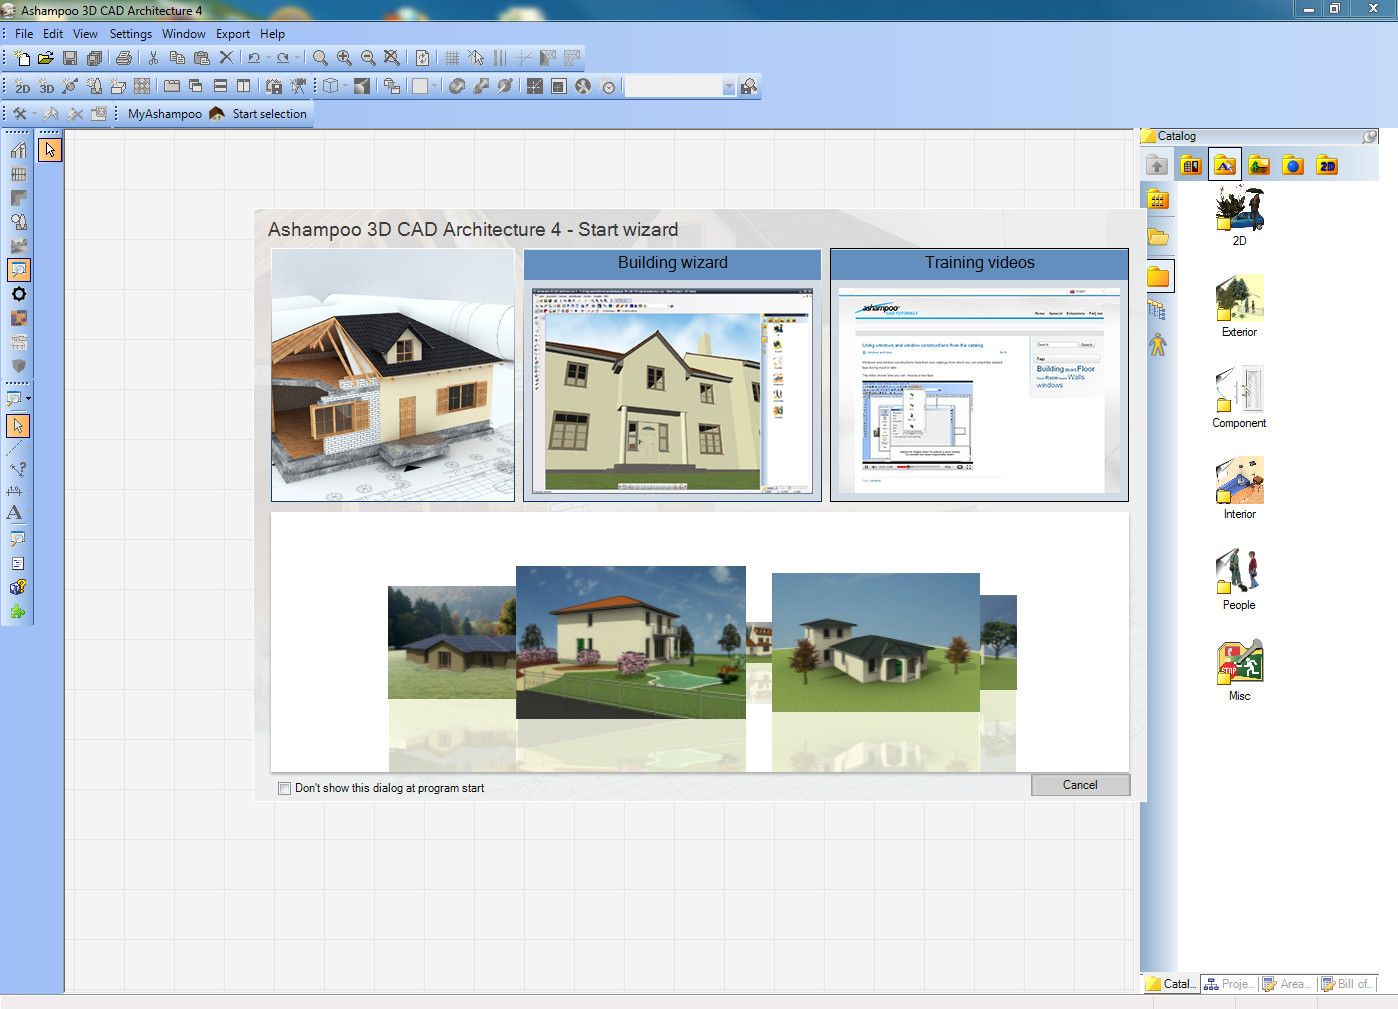 New ashampoo 3d cad architecture 4 best software 4 3d cad software